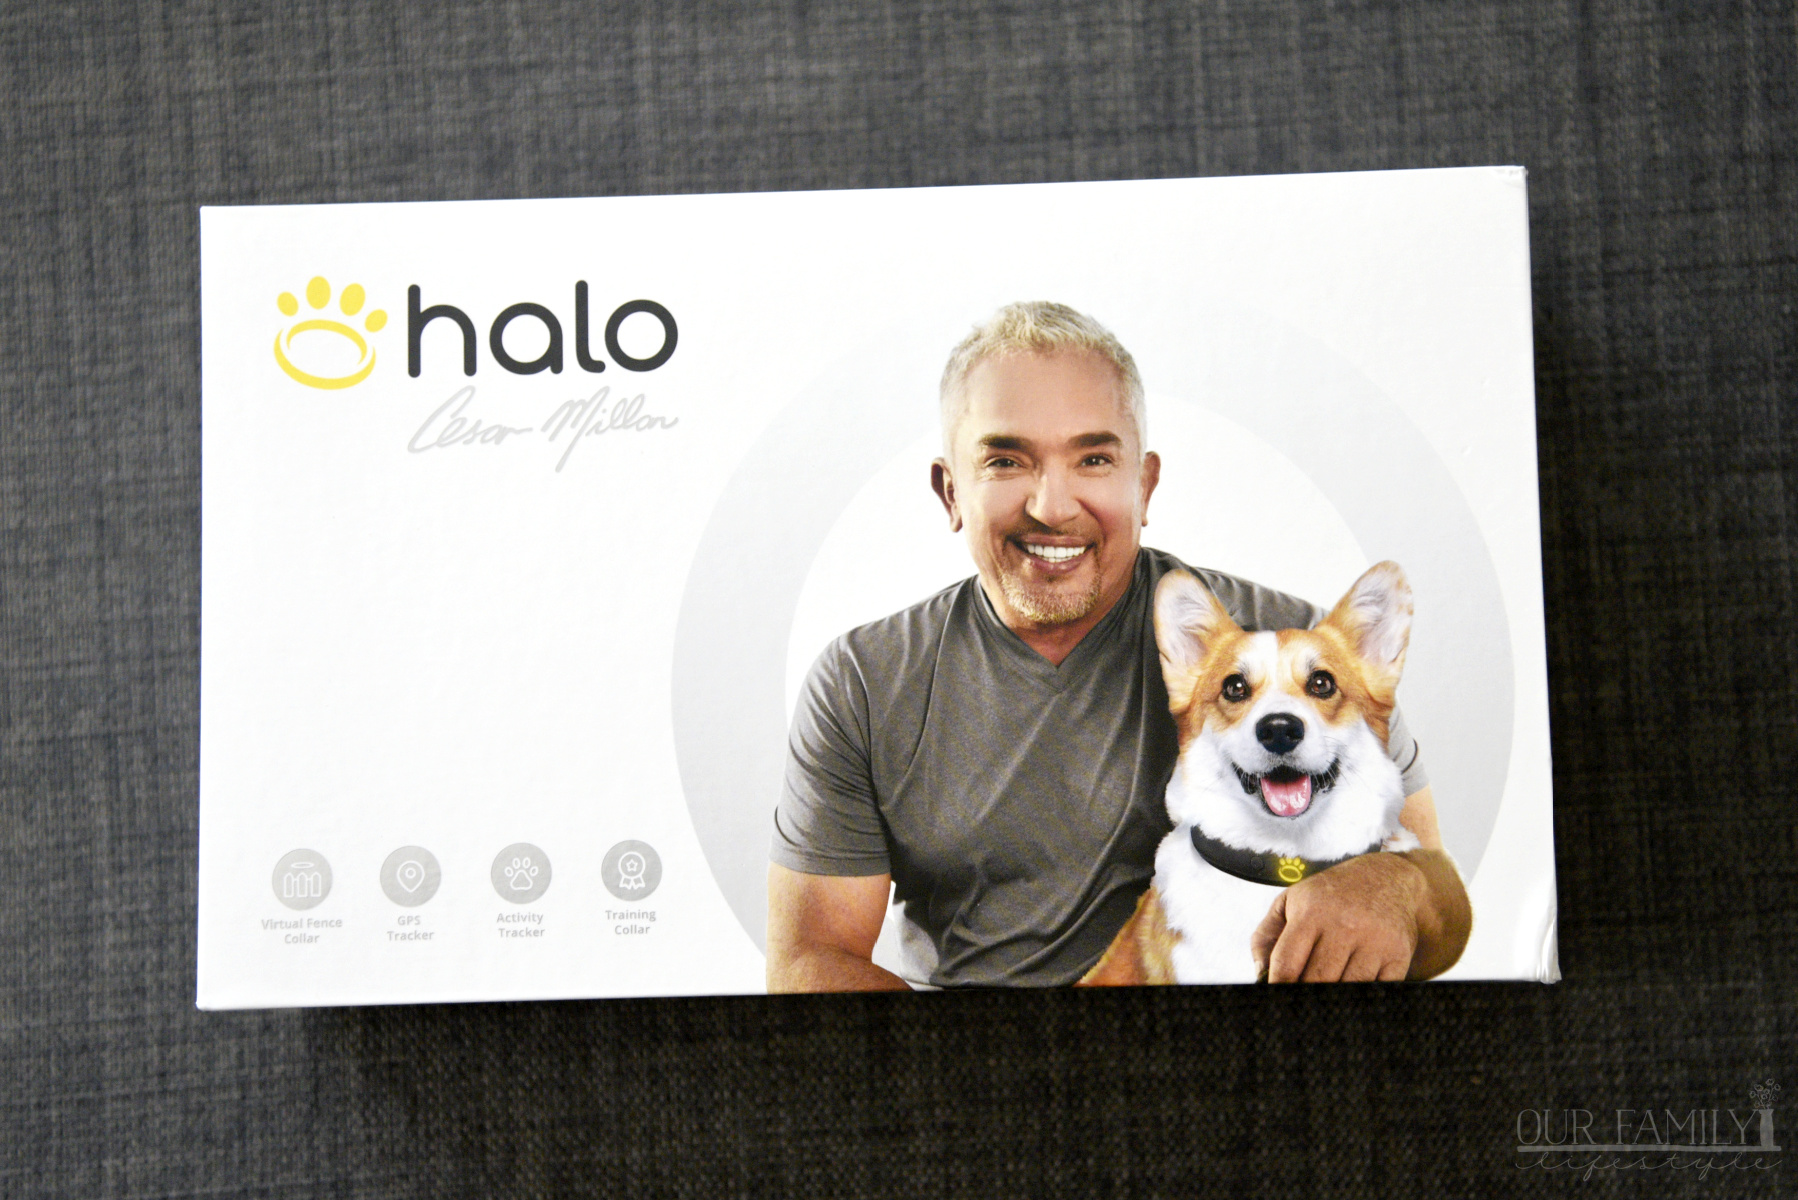 Keep Your Dog Safe with The Halo Collar